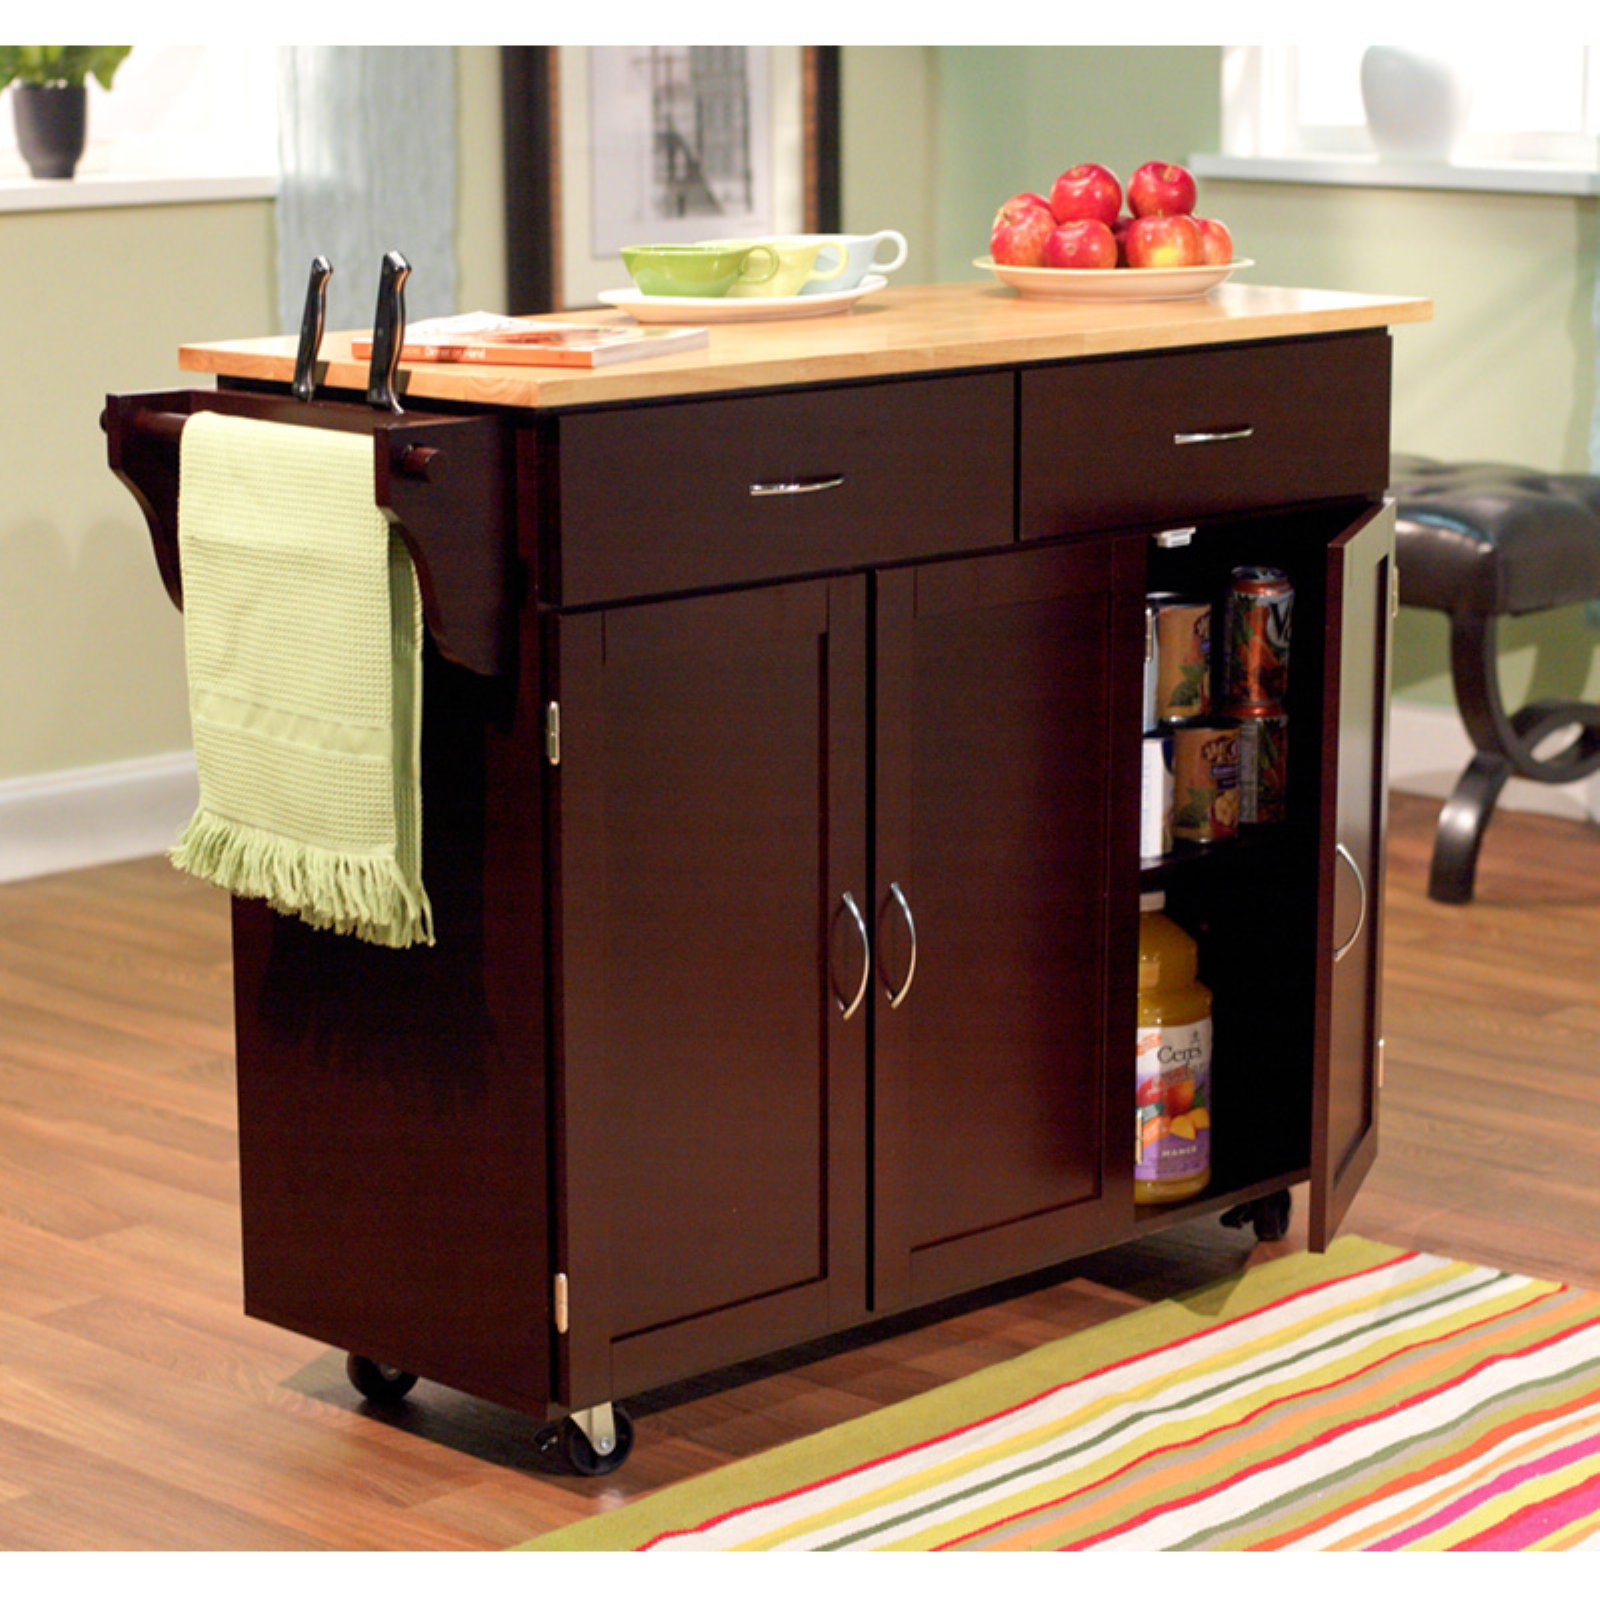 Target Marketing Systems Extra Large Kitchen Cart with Wooden Top